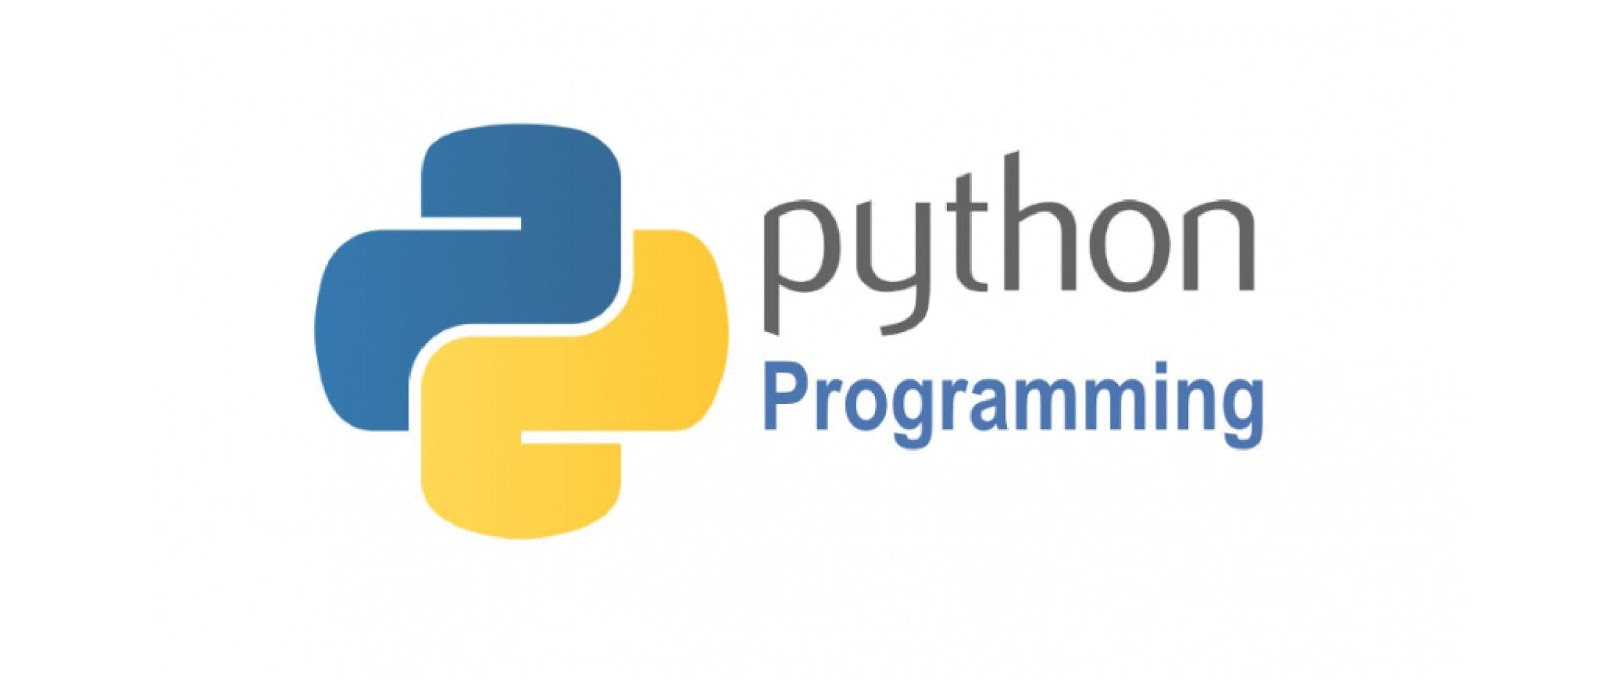 Best Programming Languages, Learning the most popular programming languages in 2021 will help you build your skills and land a job.